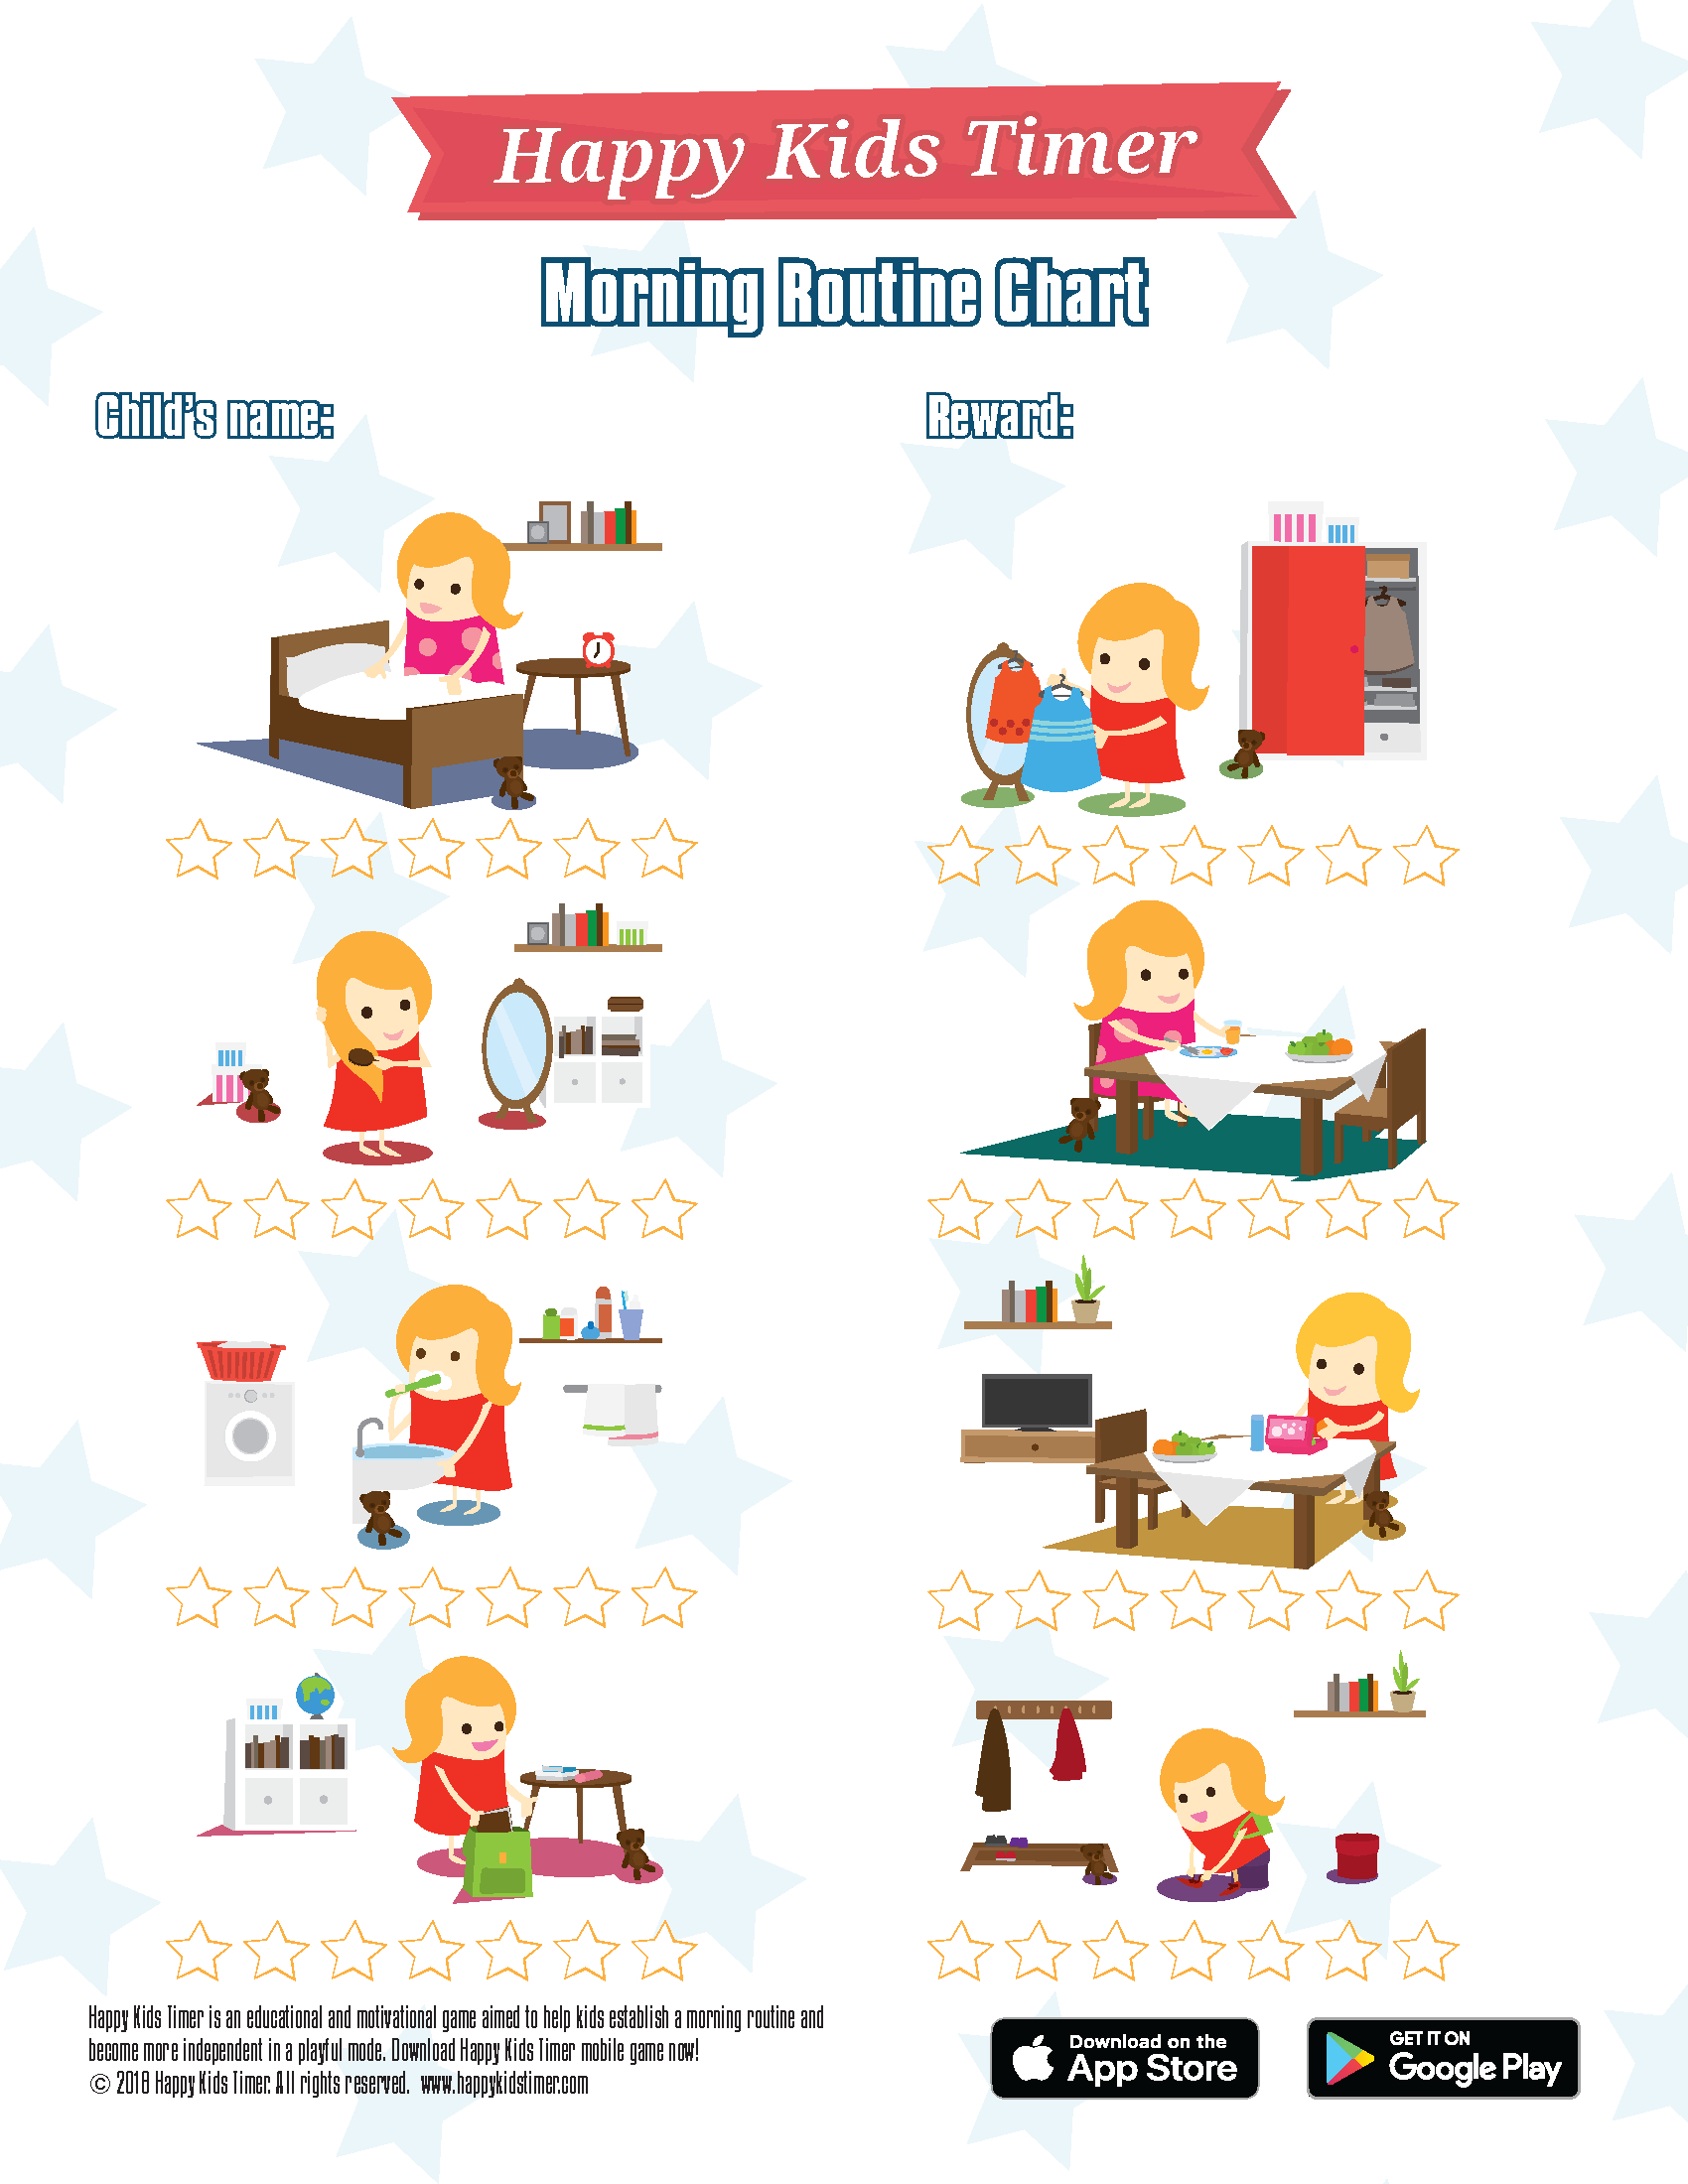 Download Free Printable Morning Routine Chart - Free Printable Morning Routine Chart